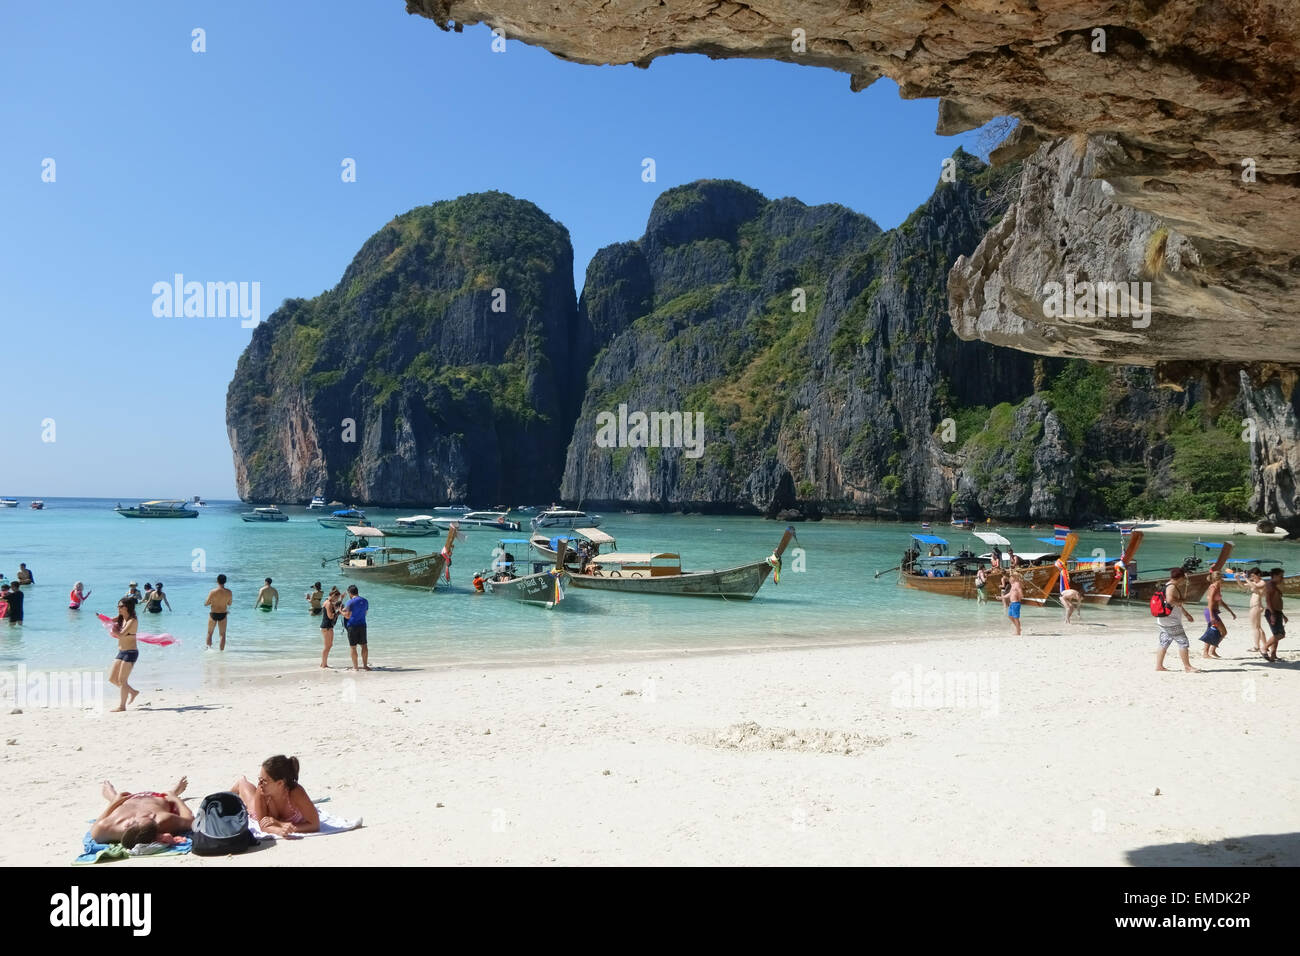 Boats, tourists, sand and sea on tropical Maya Beach, Koh Phi Phi Leh, looking out to the Andaman Sea, Krabi Province, - Stock Image